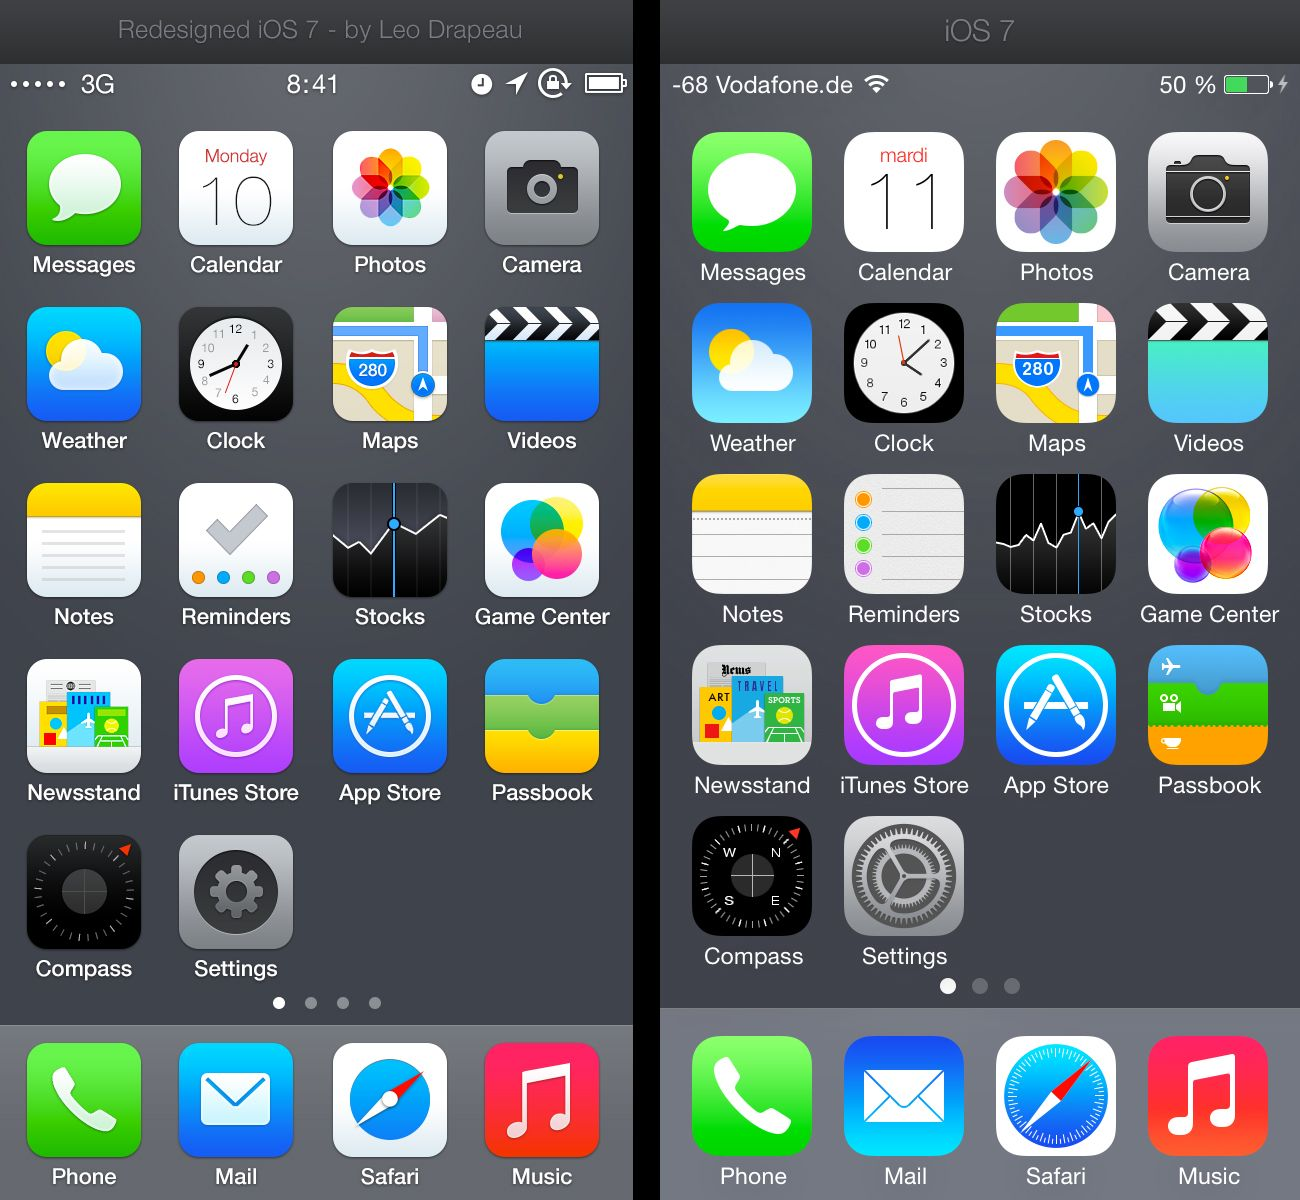 ios7 redesigned already (With images) Ios 7, Iphone apps